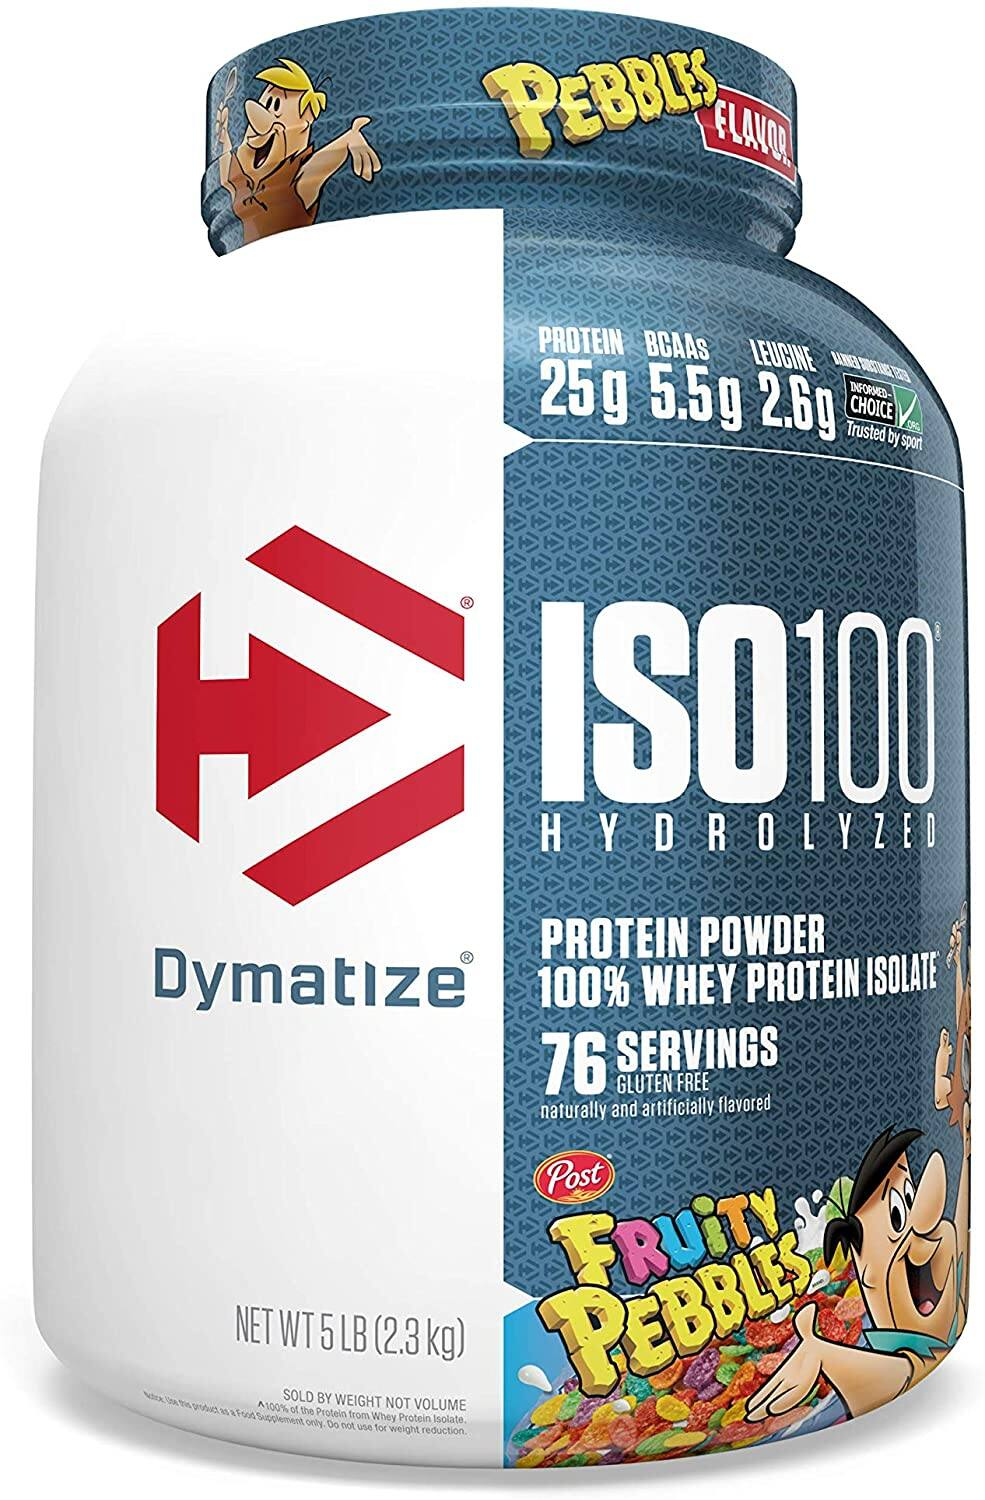 5-lbs Dymatize ISO100 Hydrolyzed 100% Whey Isolate Protein Powder (Cocoa or Fruity)